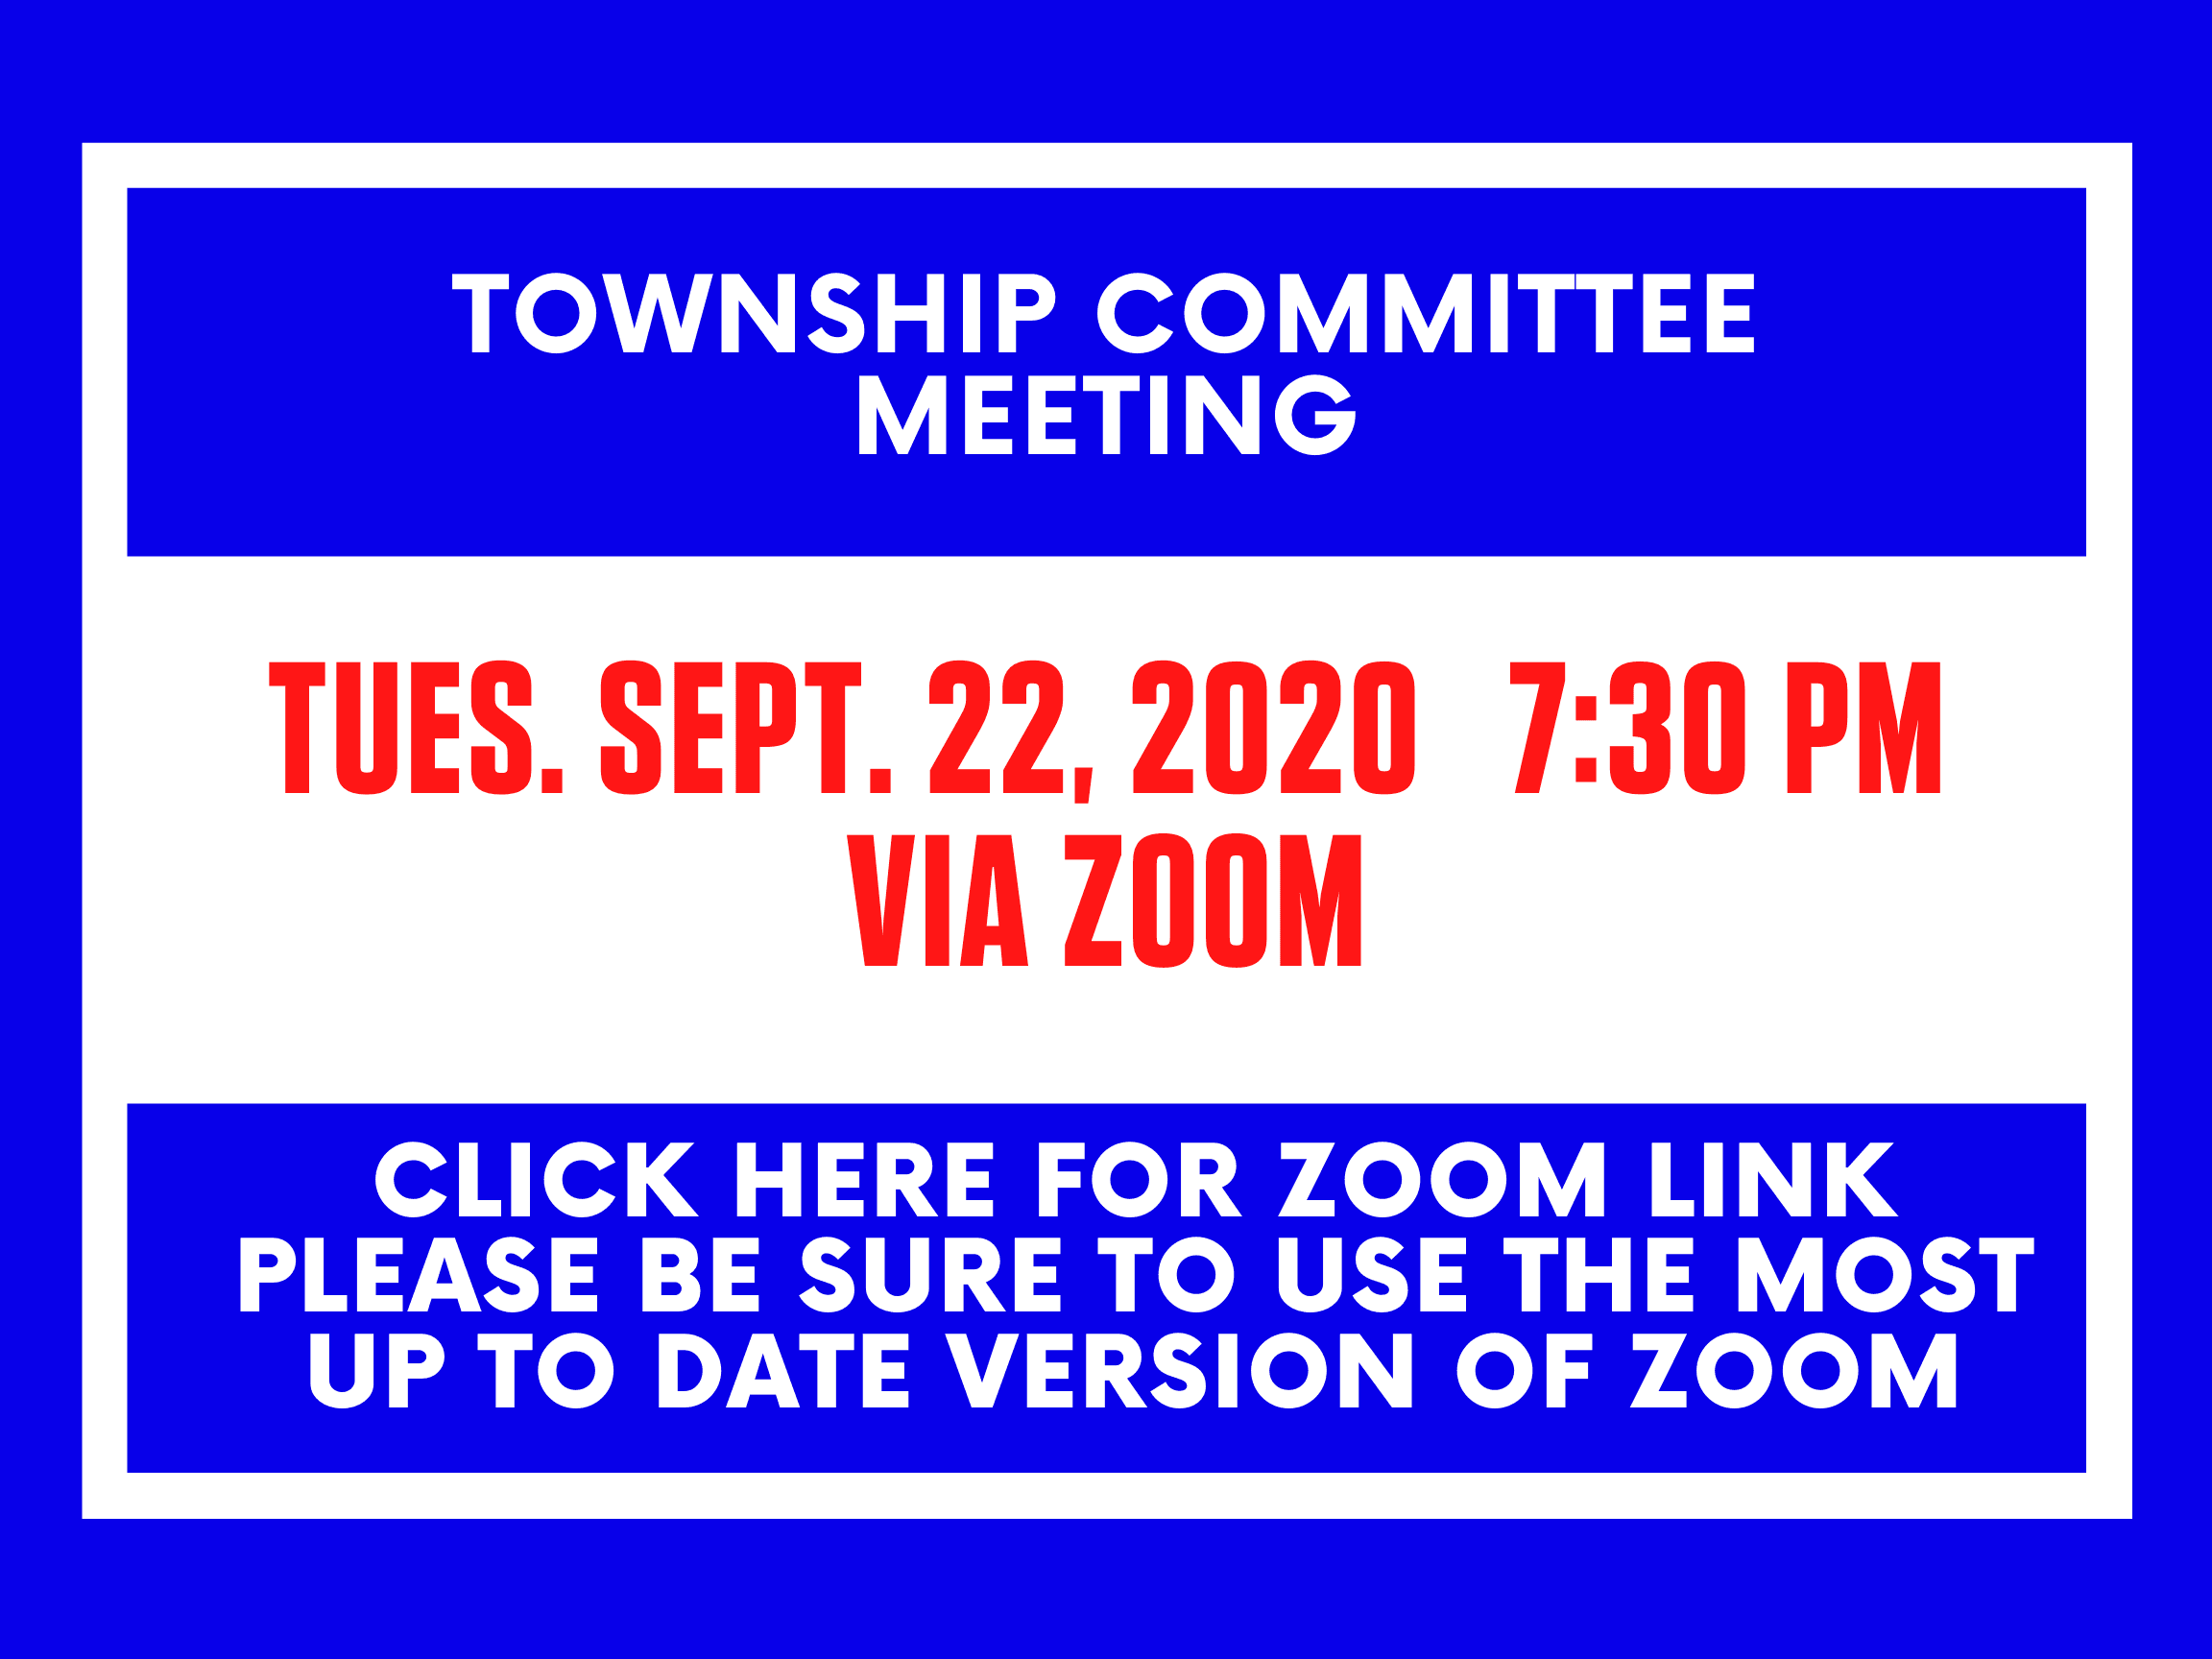 TC Meeting 9-22-20 Opens in new window